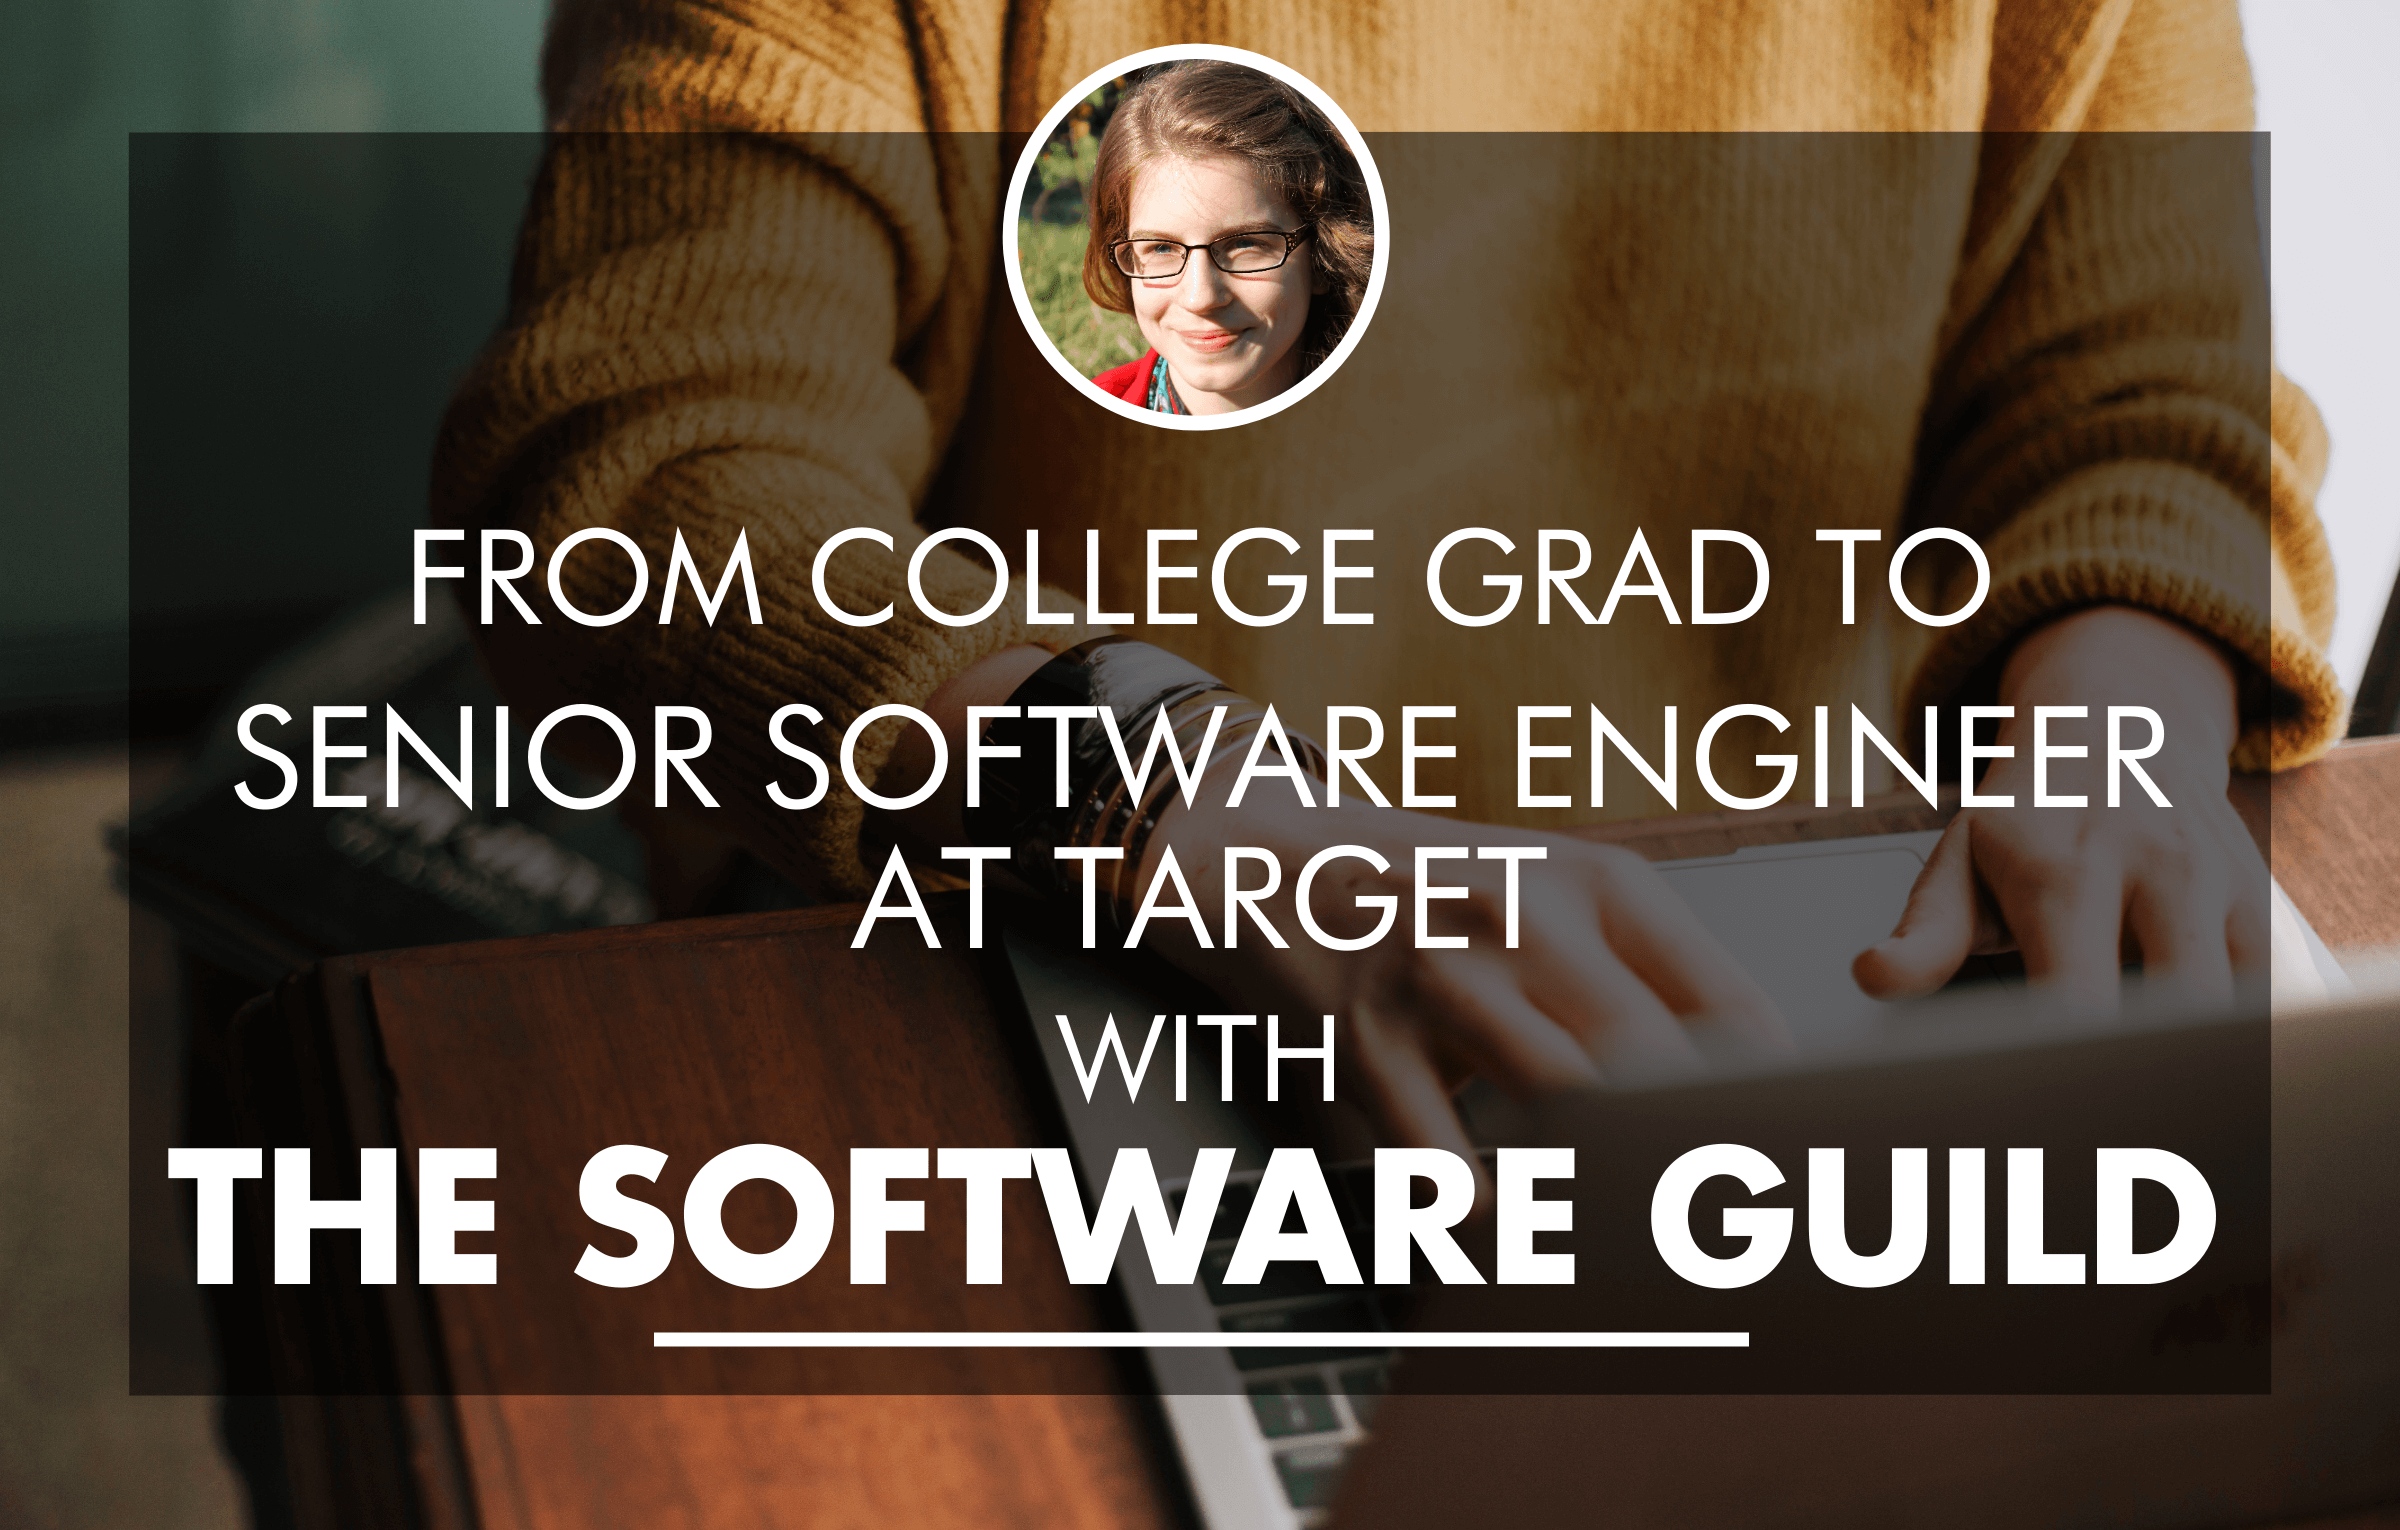 From College Grad to Senior Software Engineer at Target with The Software Guild